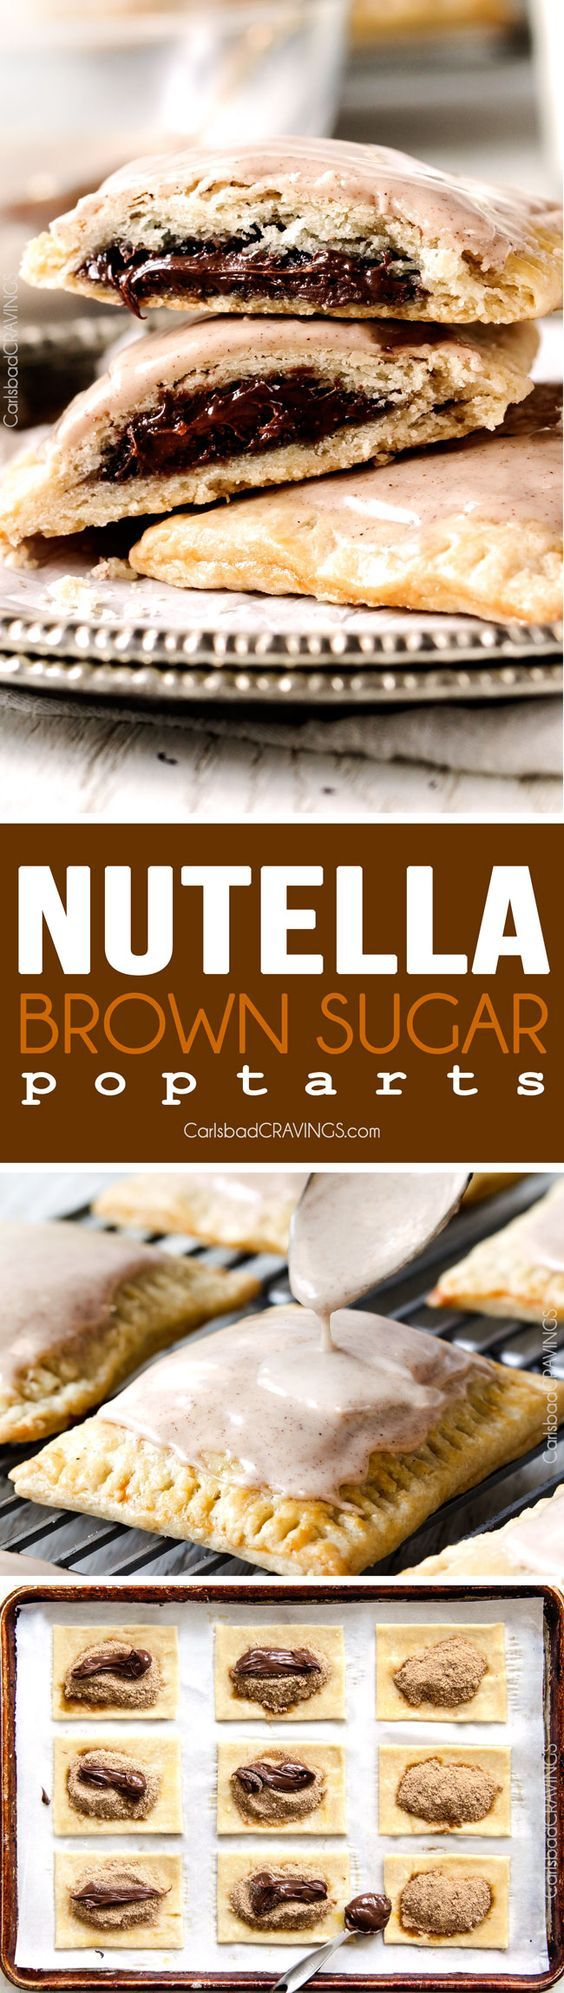 Melt in-your-mouth Nutella Brown Sugar Pop Tarts with from scratch buttery, flaky pastry smothered with Cinnamon Vanilla Icing are 1000X better than store-bought and so good you will never go back to the box kind again!